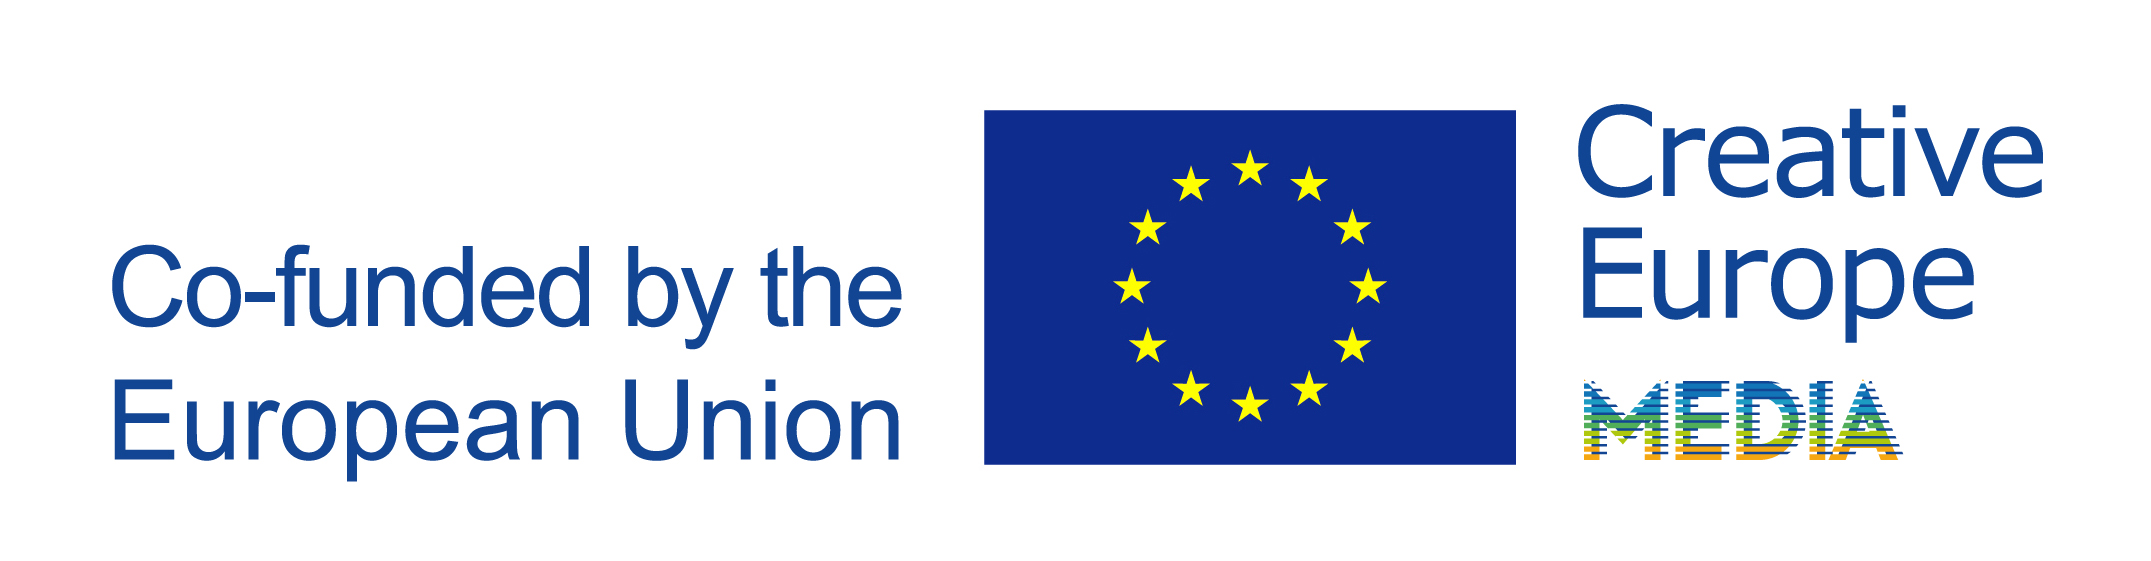 Eu_flag_creative_europe_media_co_funded_en